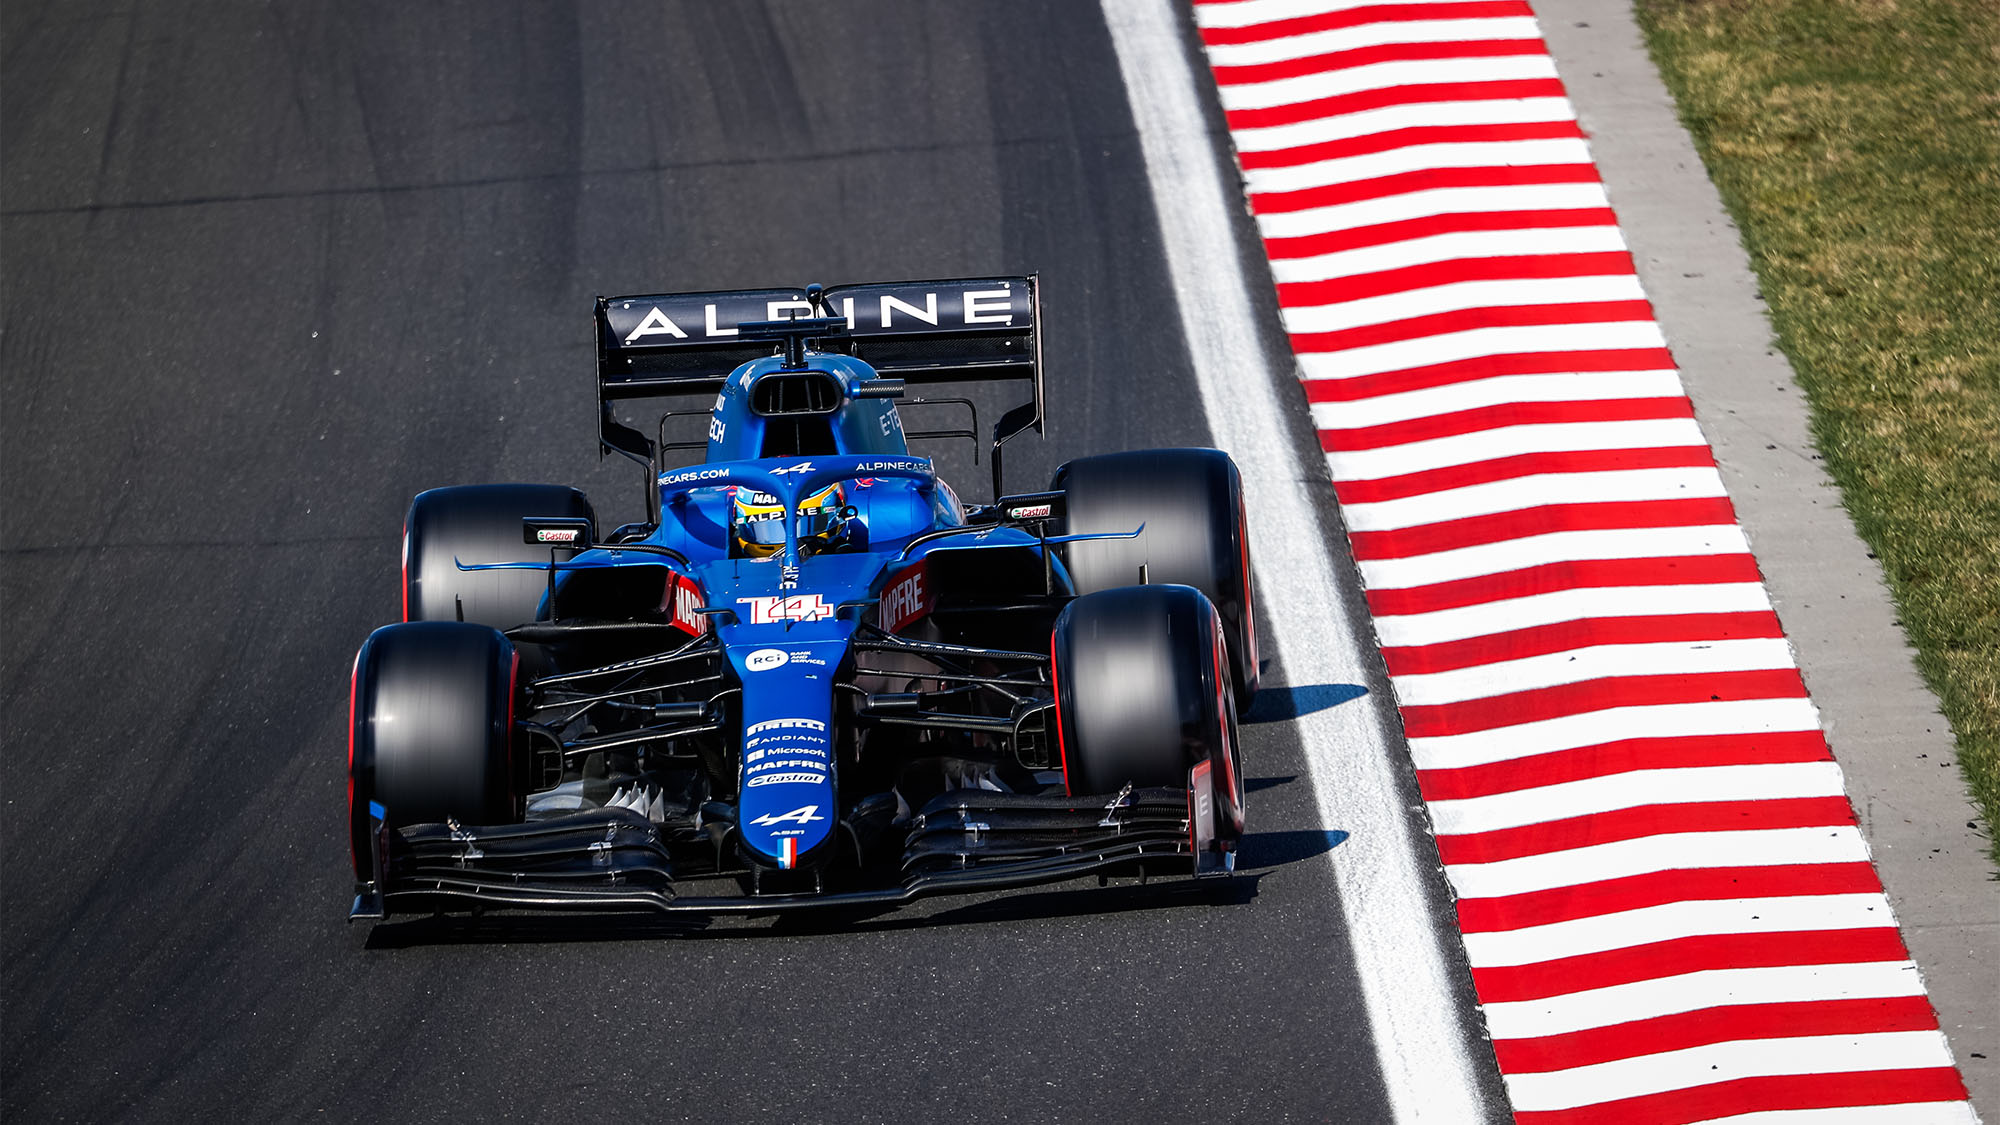 14 ALONSO Fernando (spa), Alpine F1 A521, action during the Formula 1 Magyar Nagydij 2021, Hungarian Grand Prix, 11th round of the 2021 FIA Formula One World Championship from July 30 to August 1, 2021 on the Hungaroring, in Mogyorod, near Budapest, Hungary - Photo Antonin Vincent / DPPI